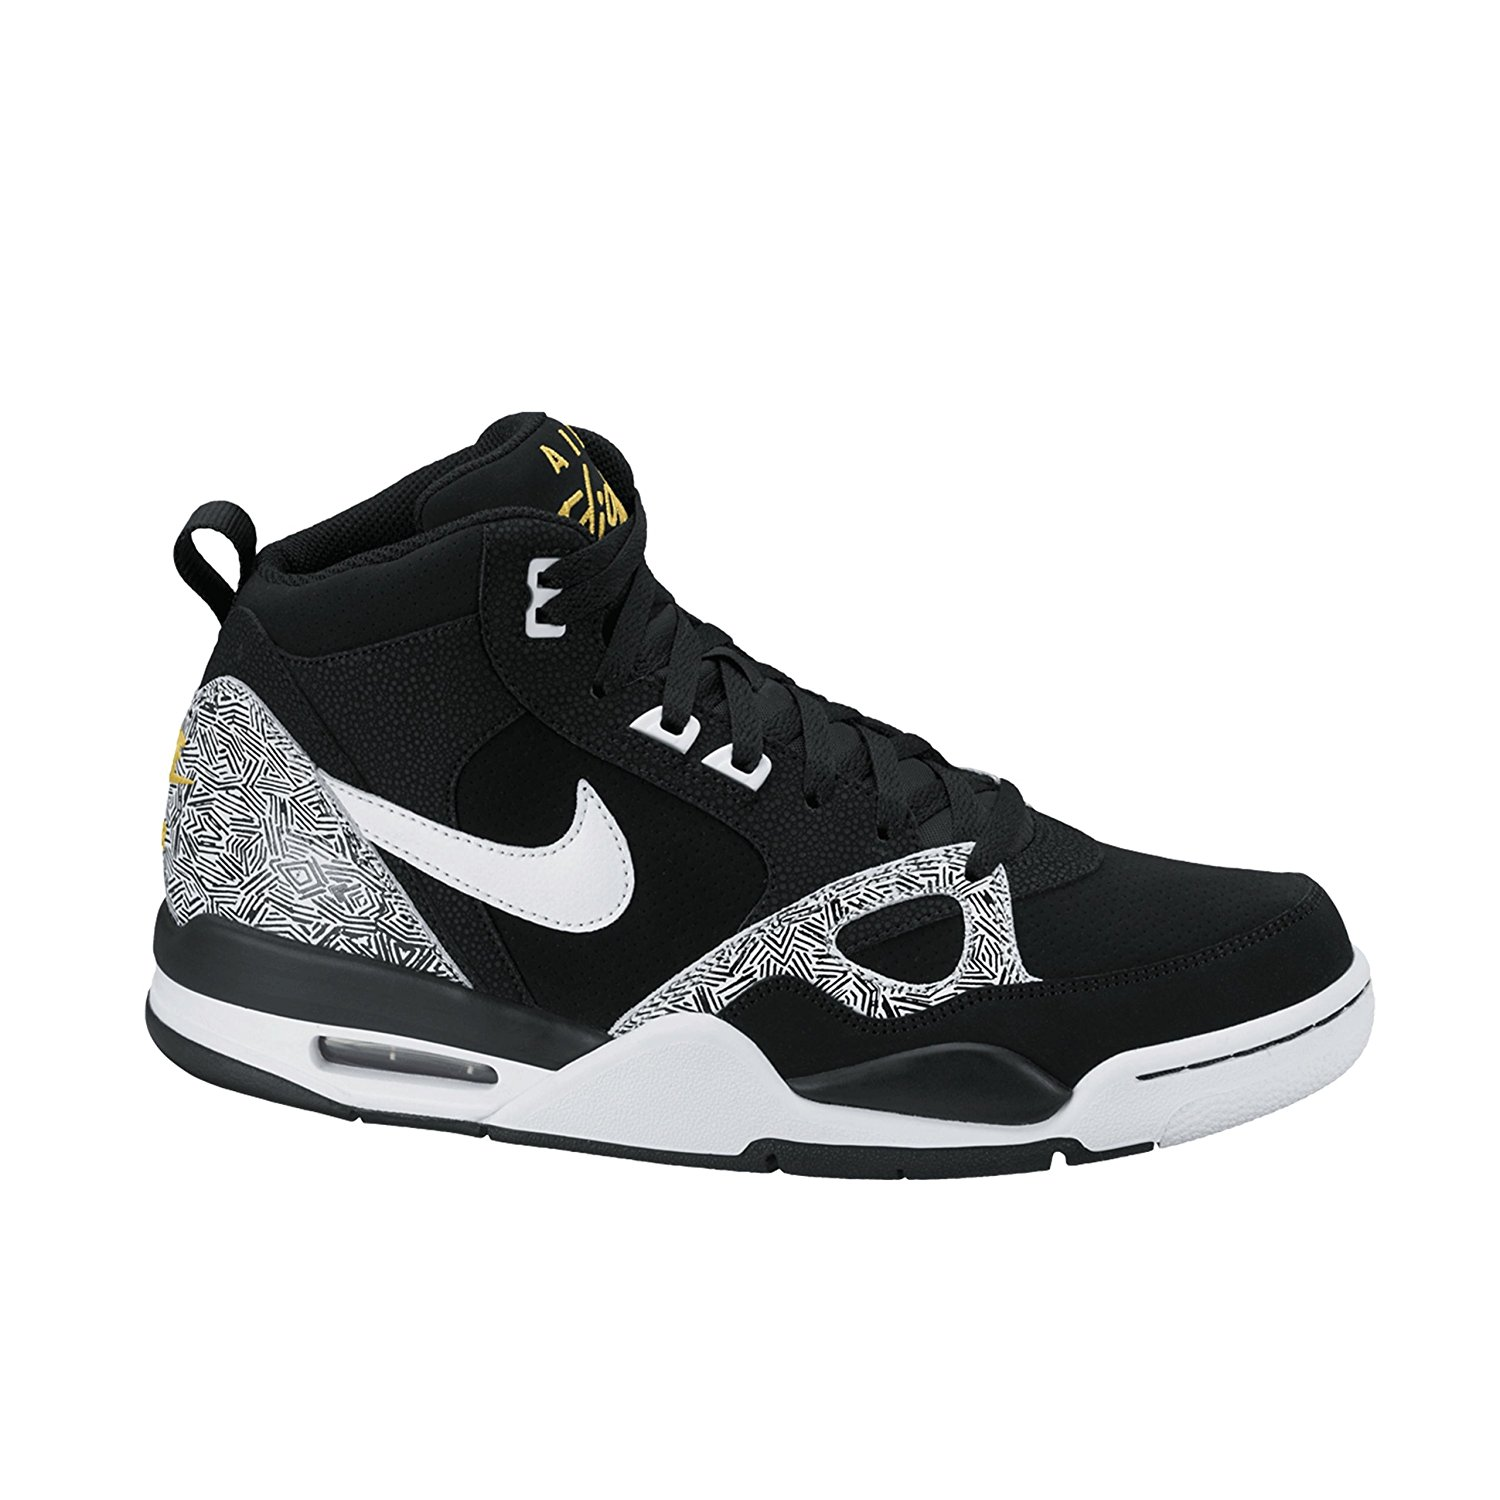 80b2c339a nike flight 13 mid mens hi top trainers 579961 sneakers shoes